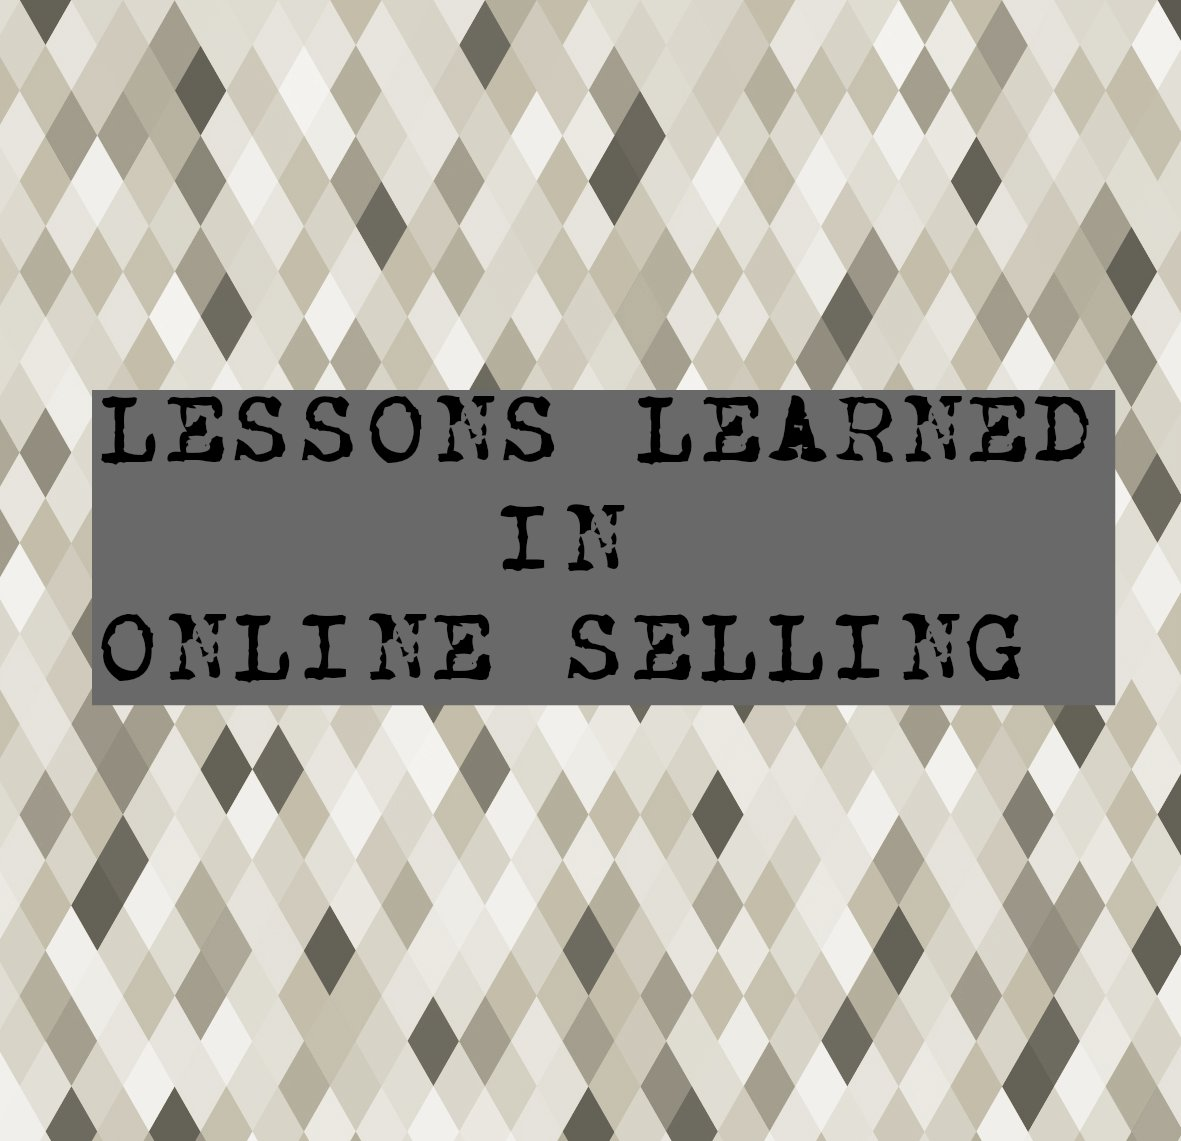 lessons learned in online selling